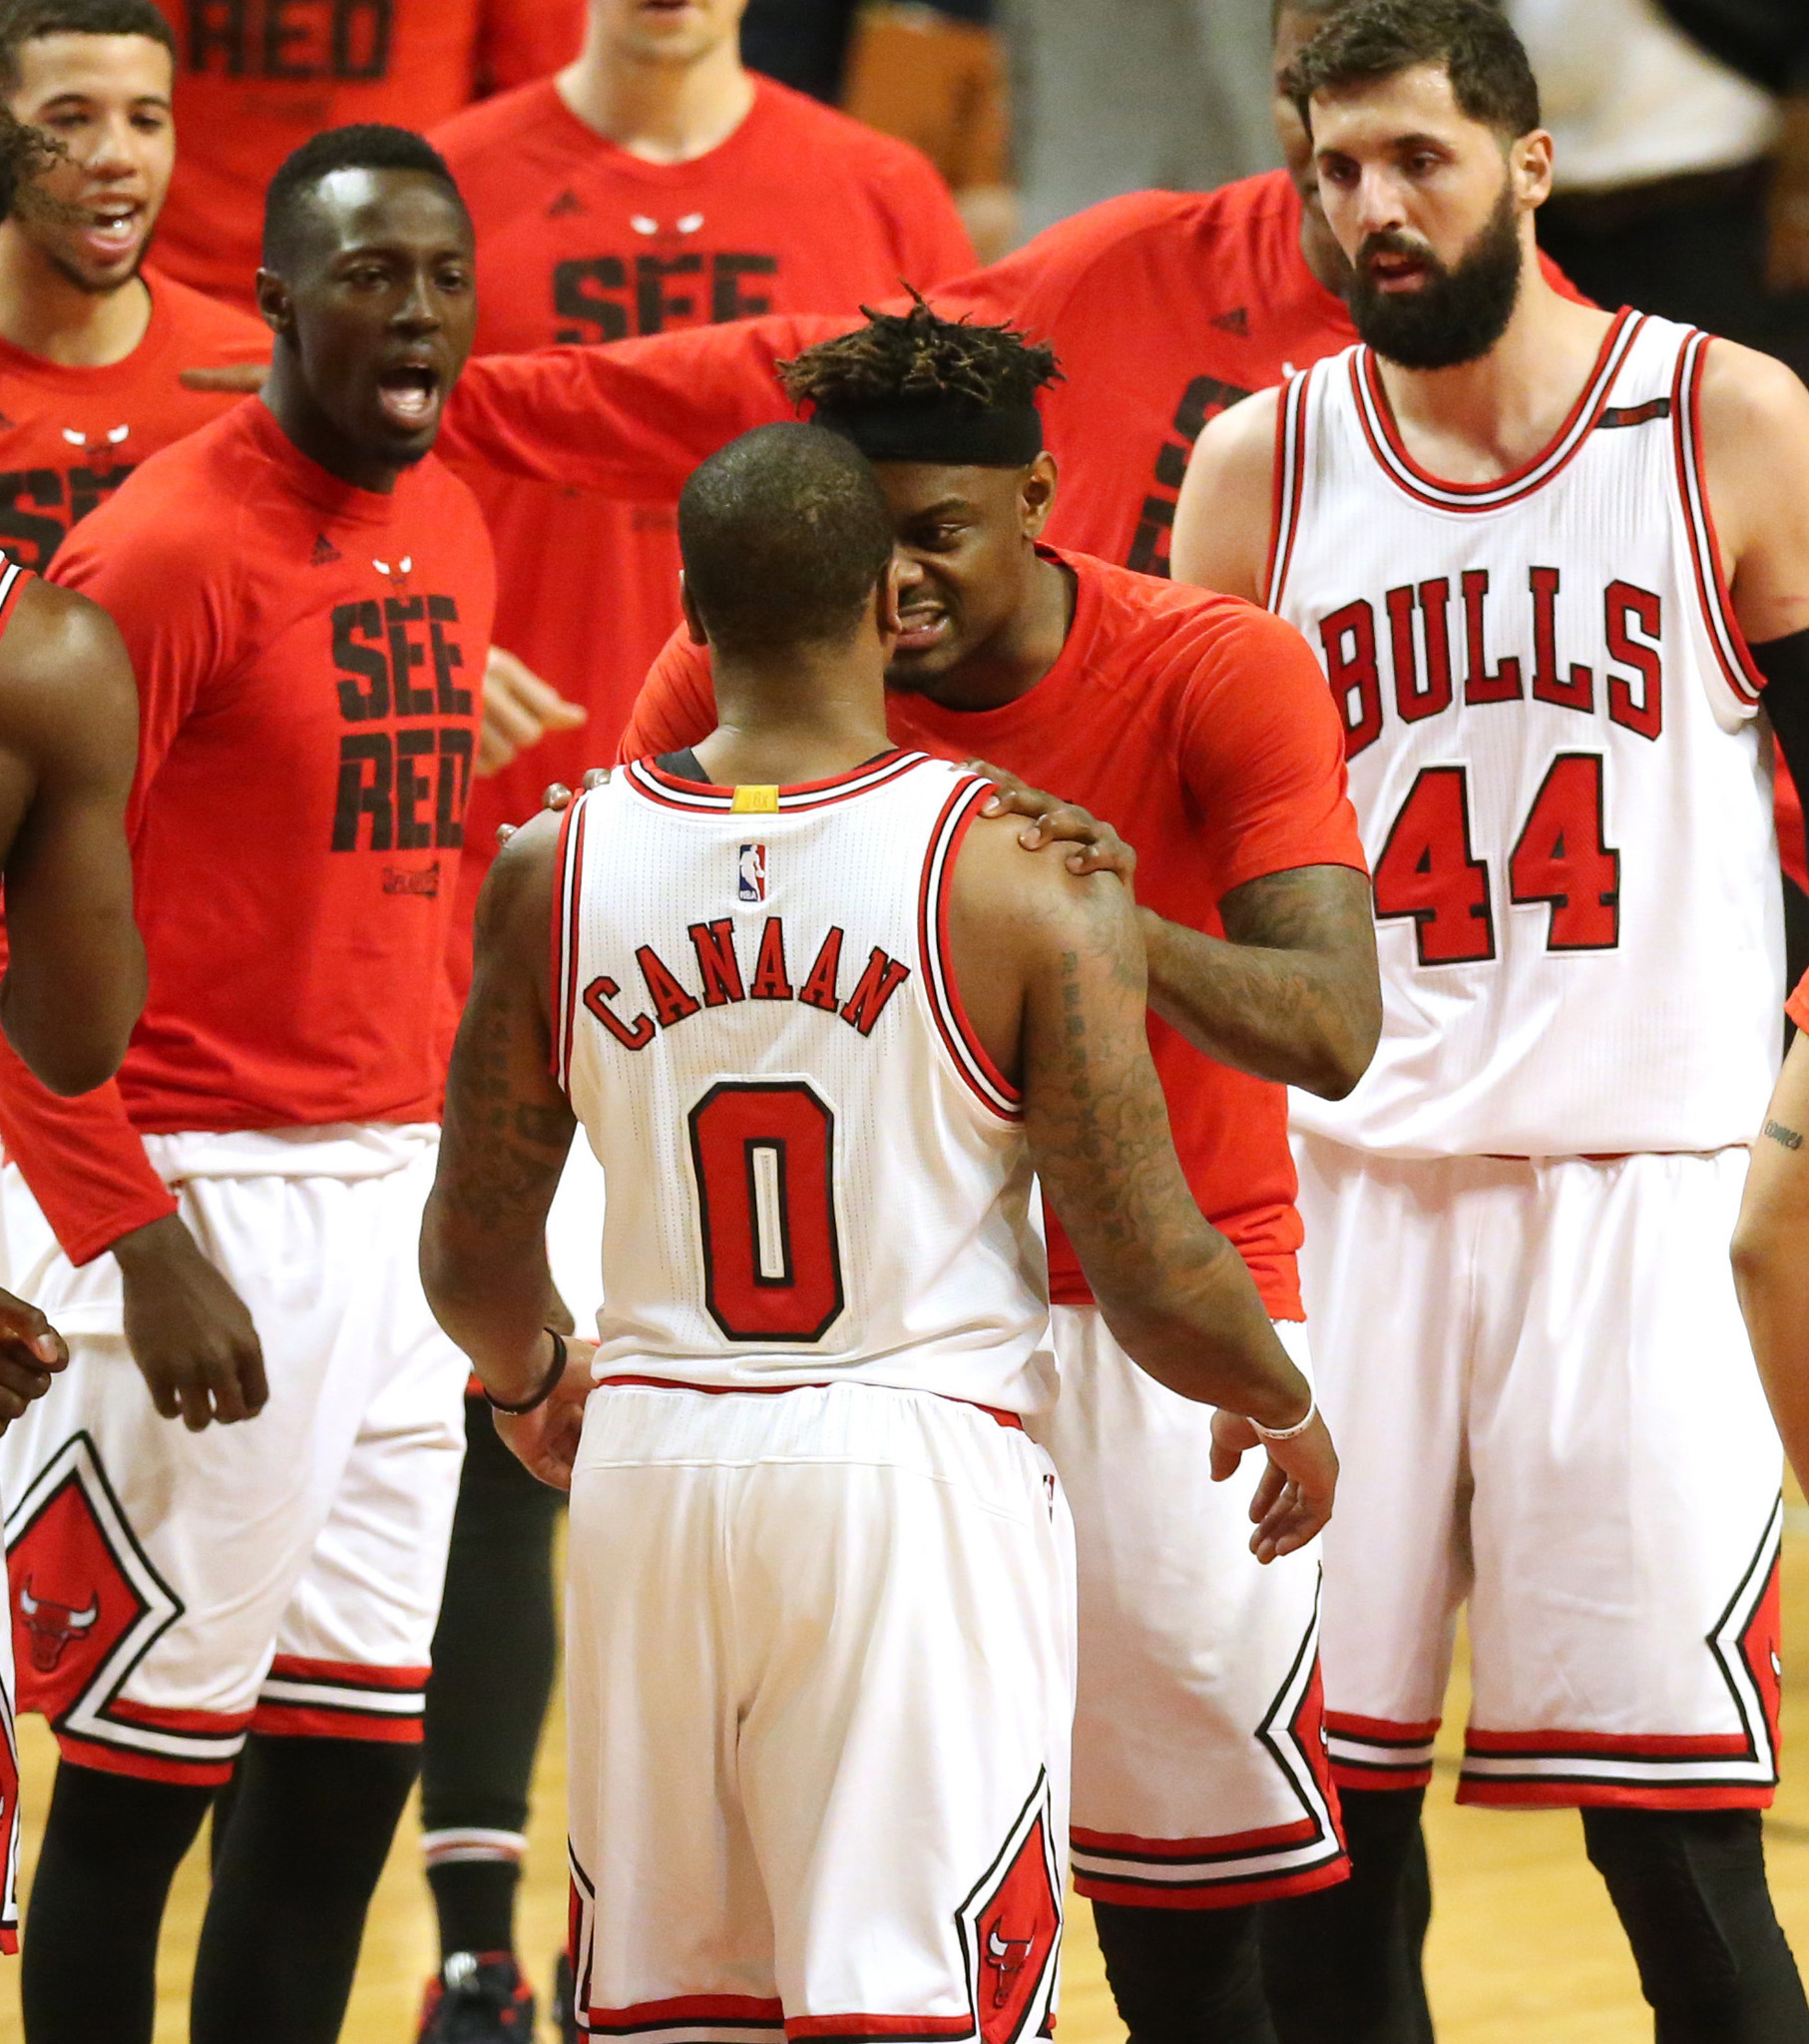 Ct-bulls-point-guard-woes-20170424